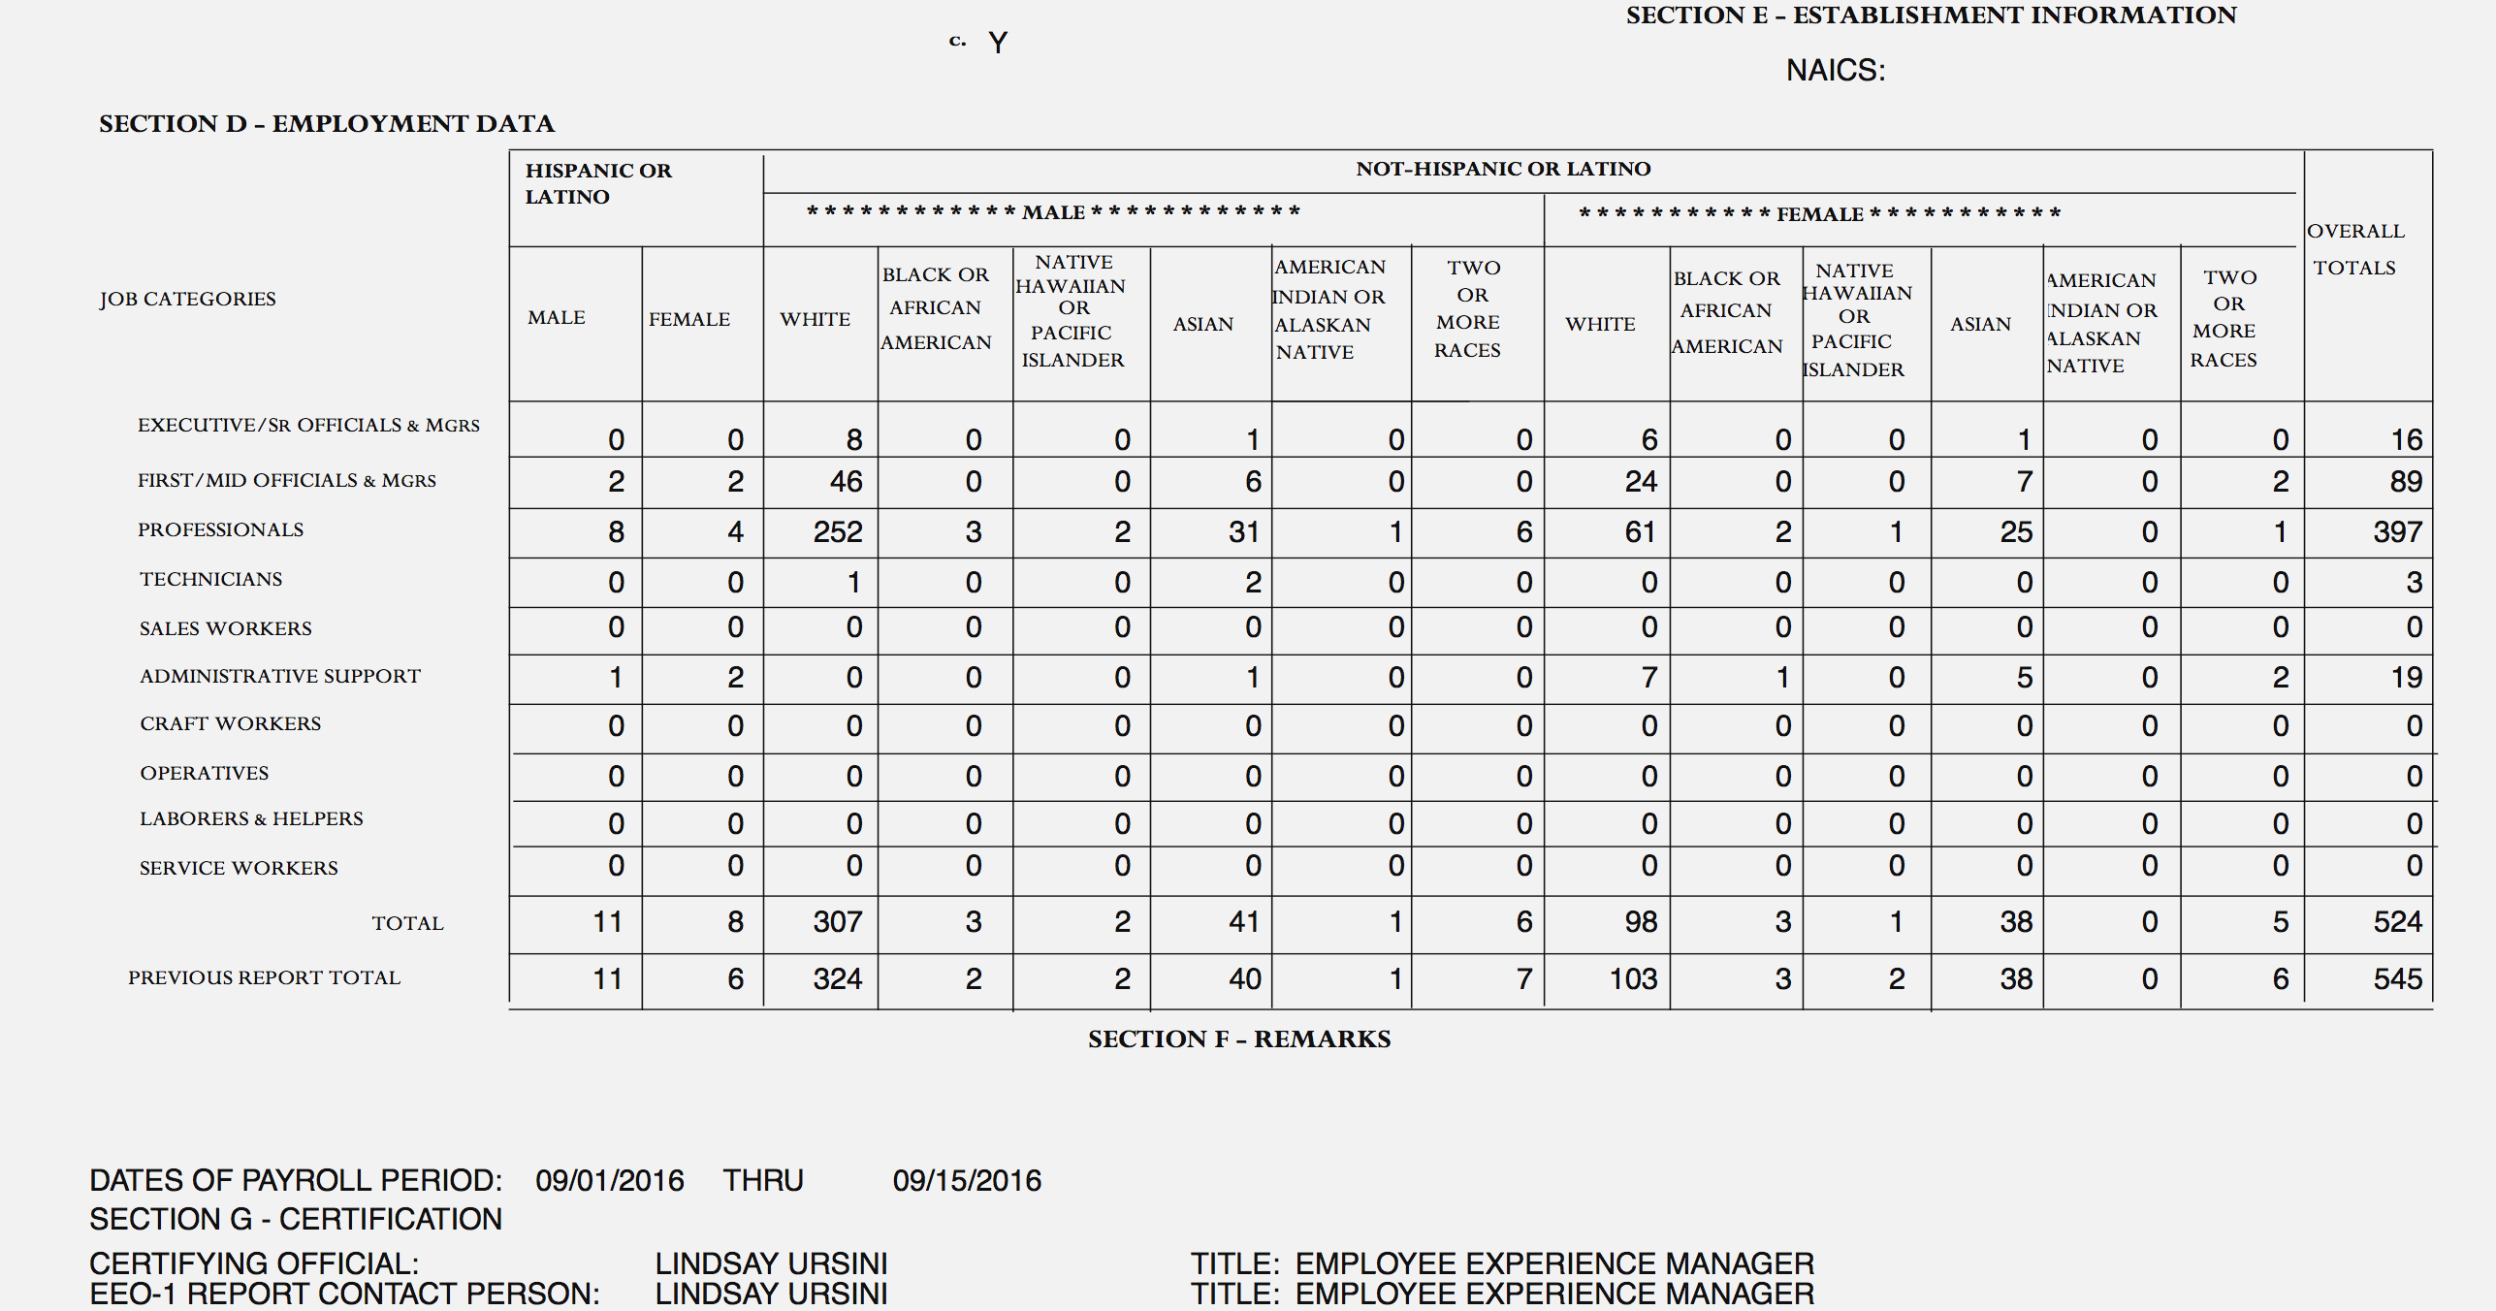 Blank Eeo  Form Athiy Khudothiharborcity Co Proposedeeo Revi Throughout Eeo 1 Report Template